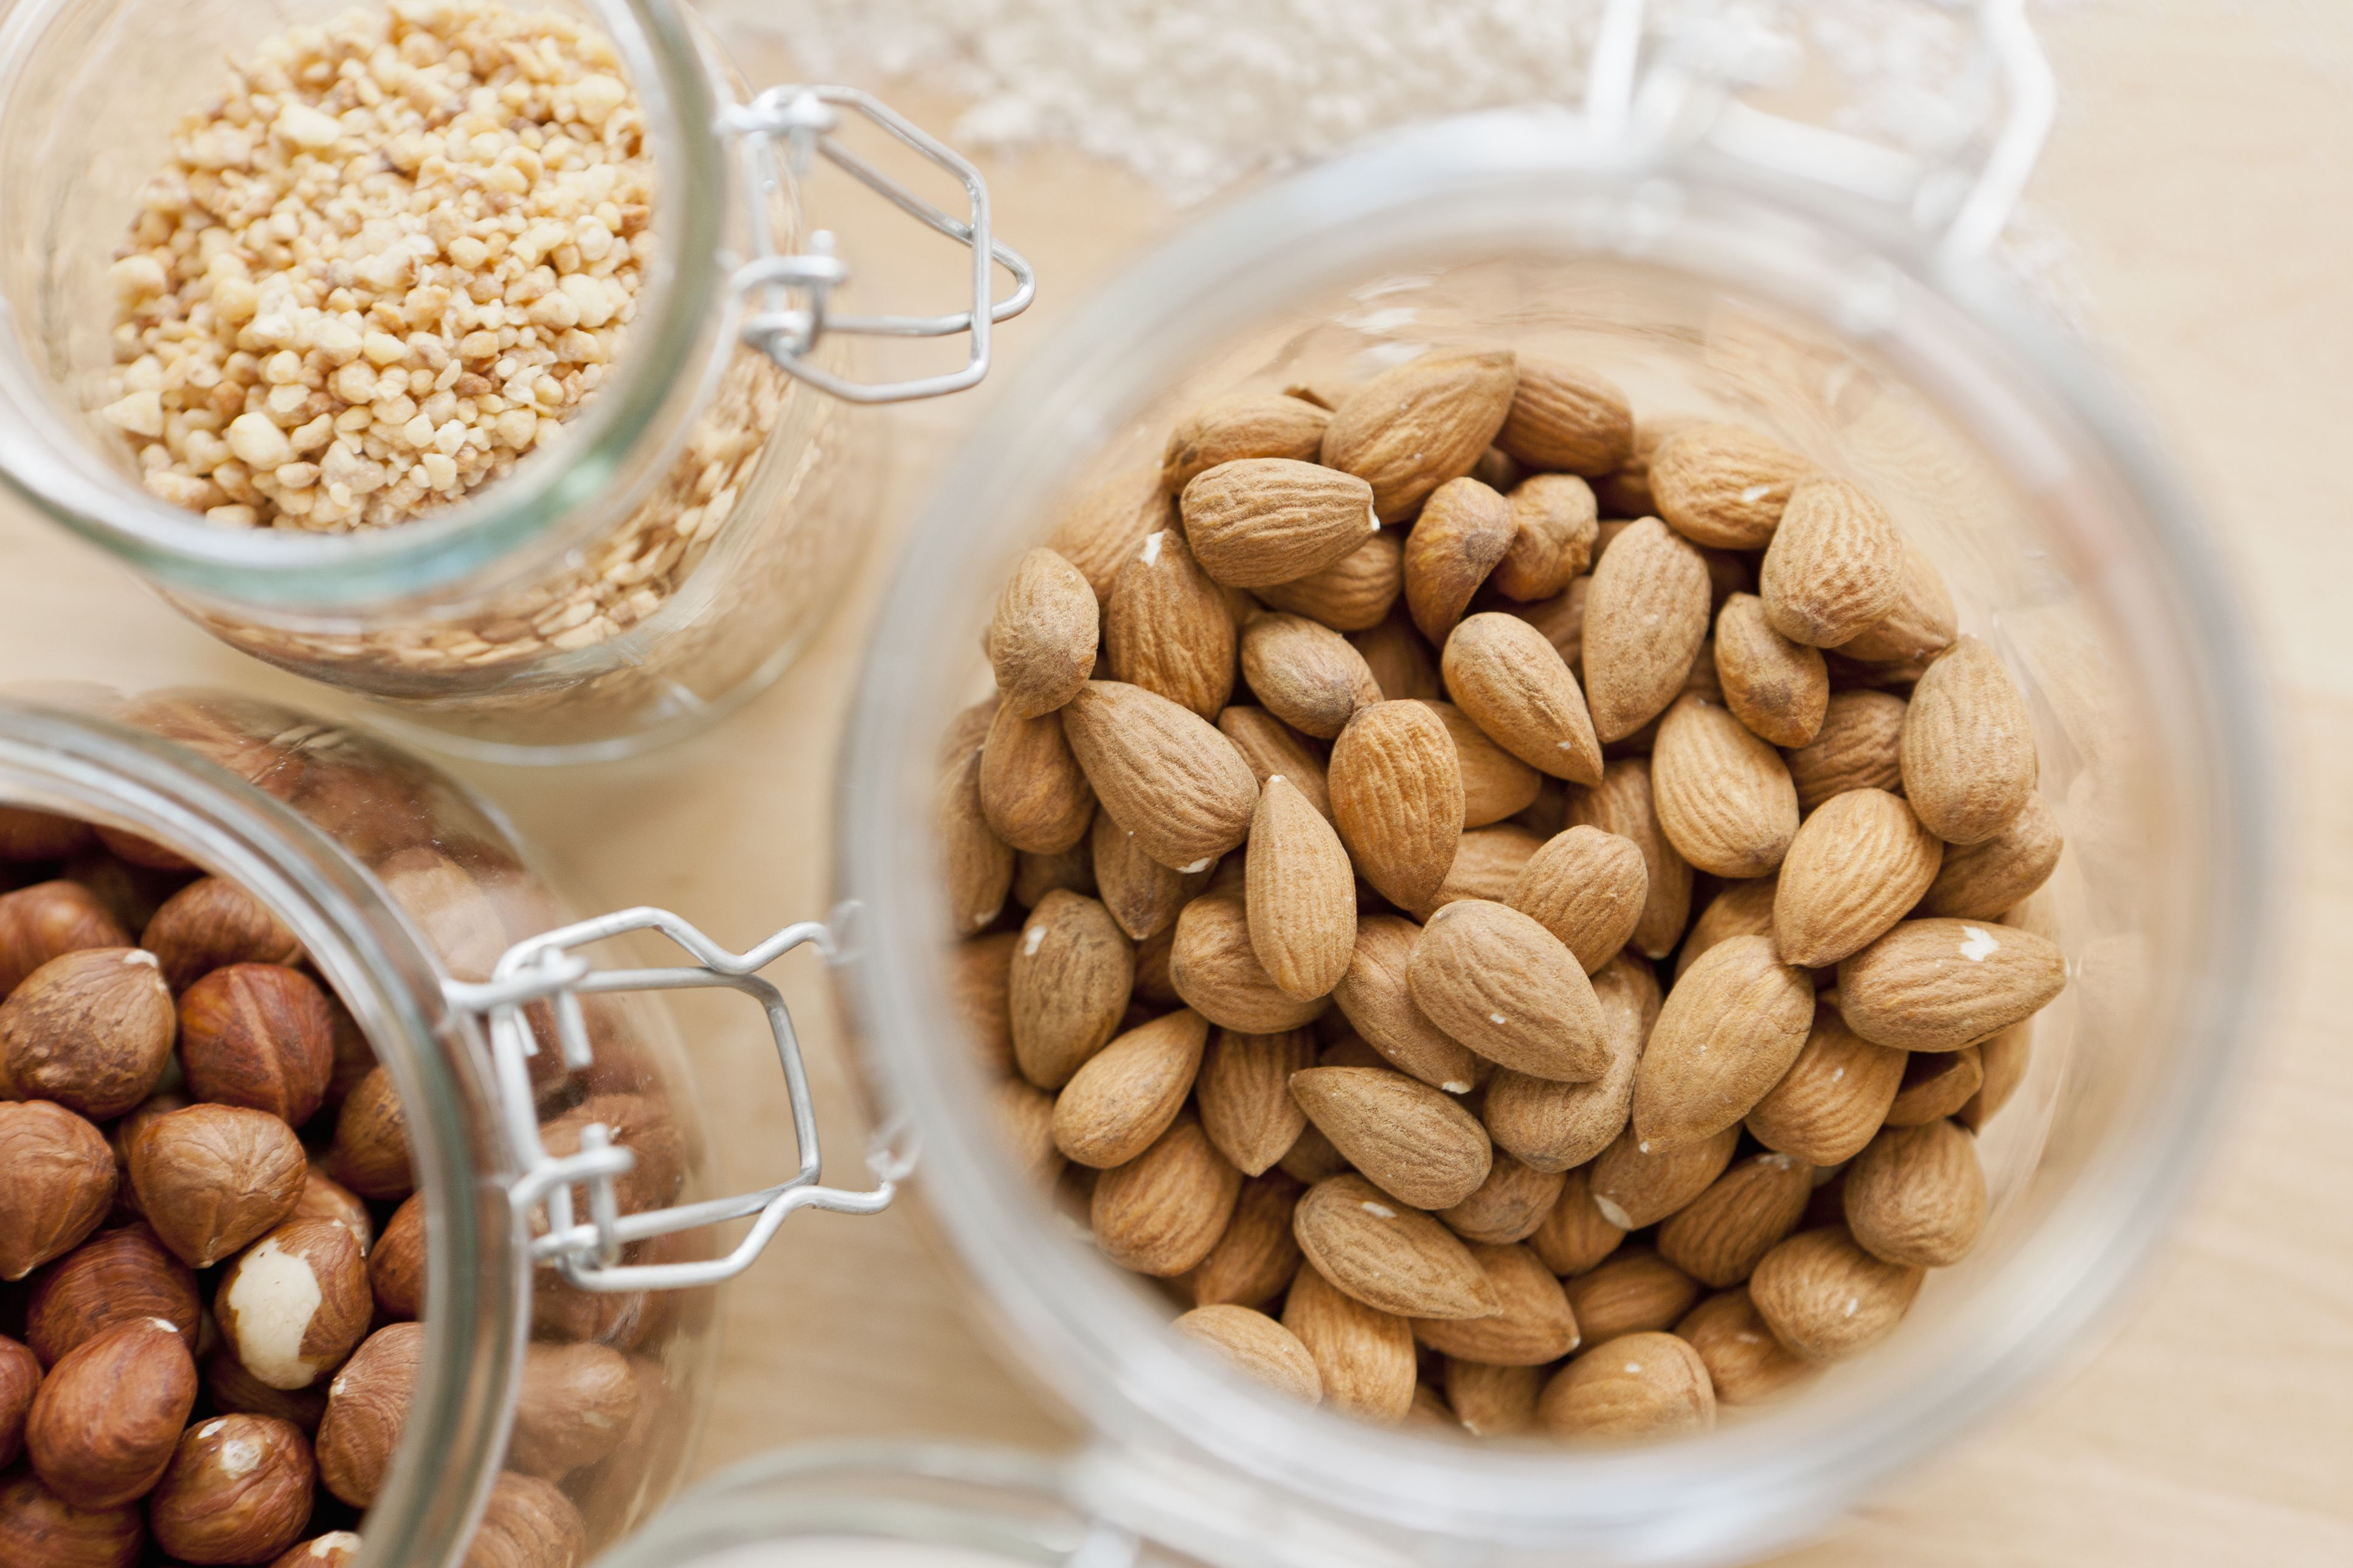 jars of almonds and other nuts